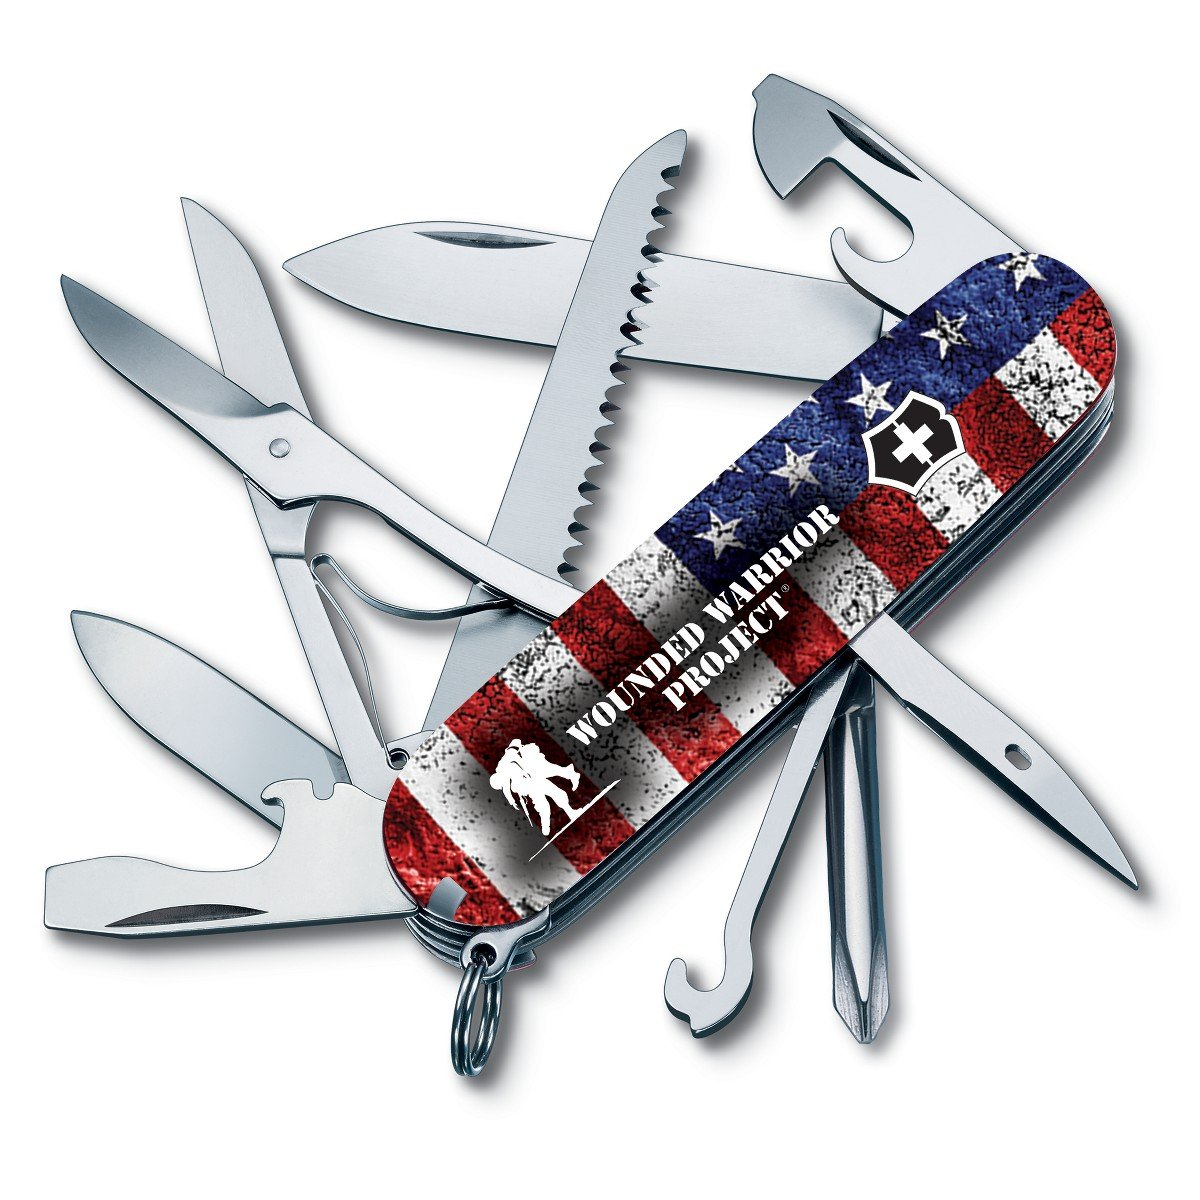 Victorinox Swiss Army Fieldmaster Pocket Knife 55075.US2, Wounded Warrior Project Collection, American Flag with WWP Logo by Victorinox